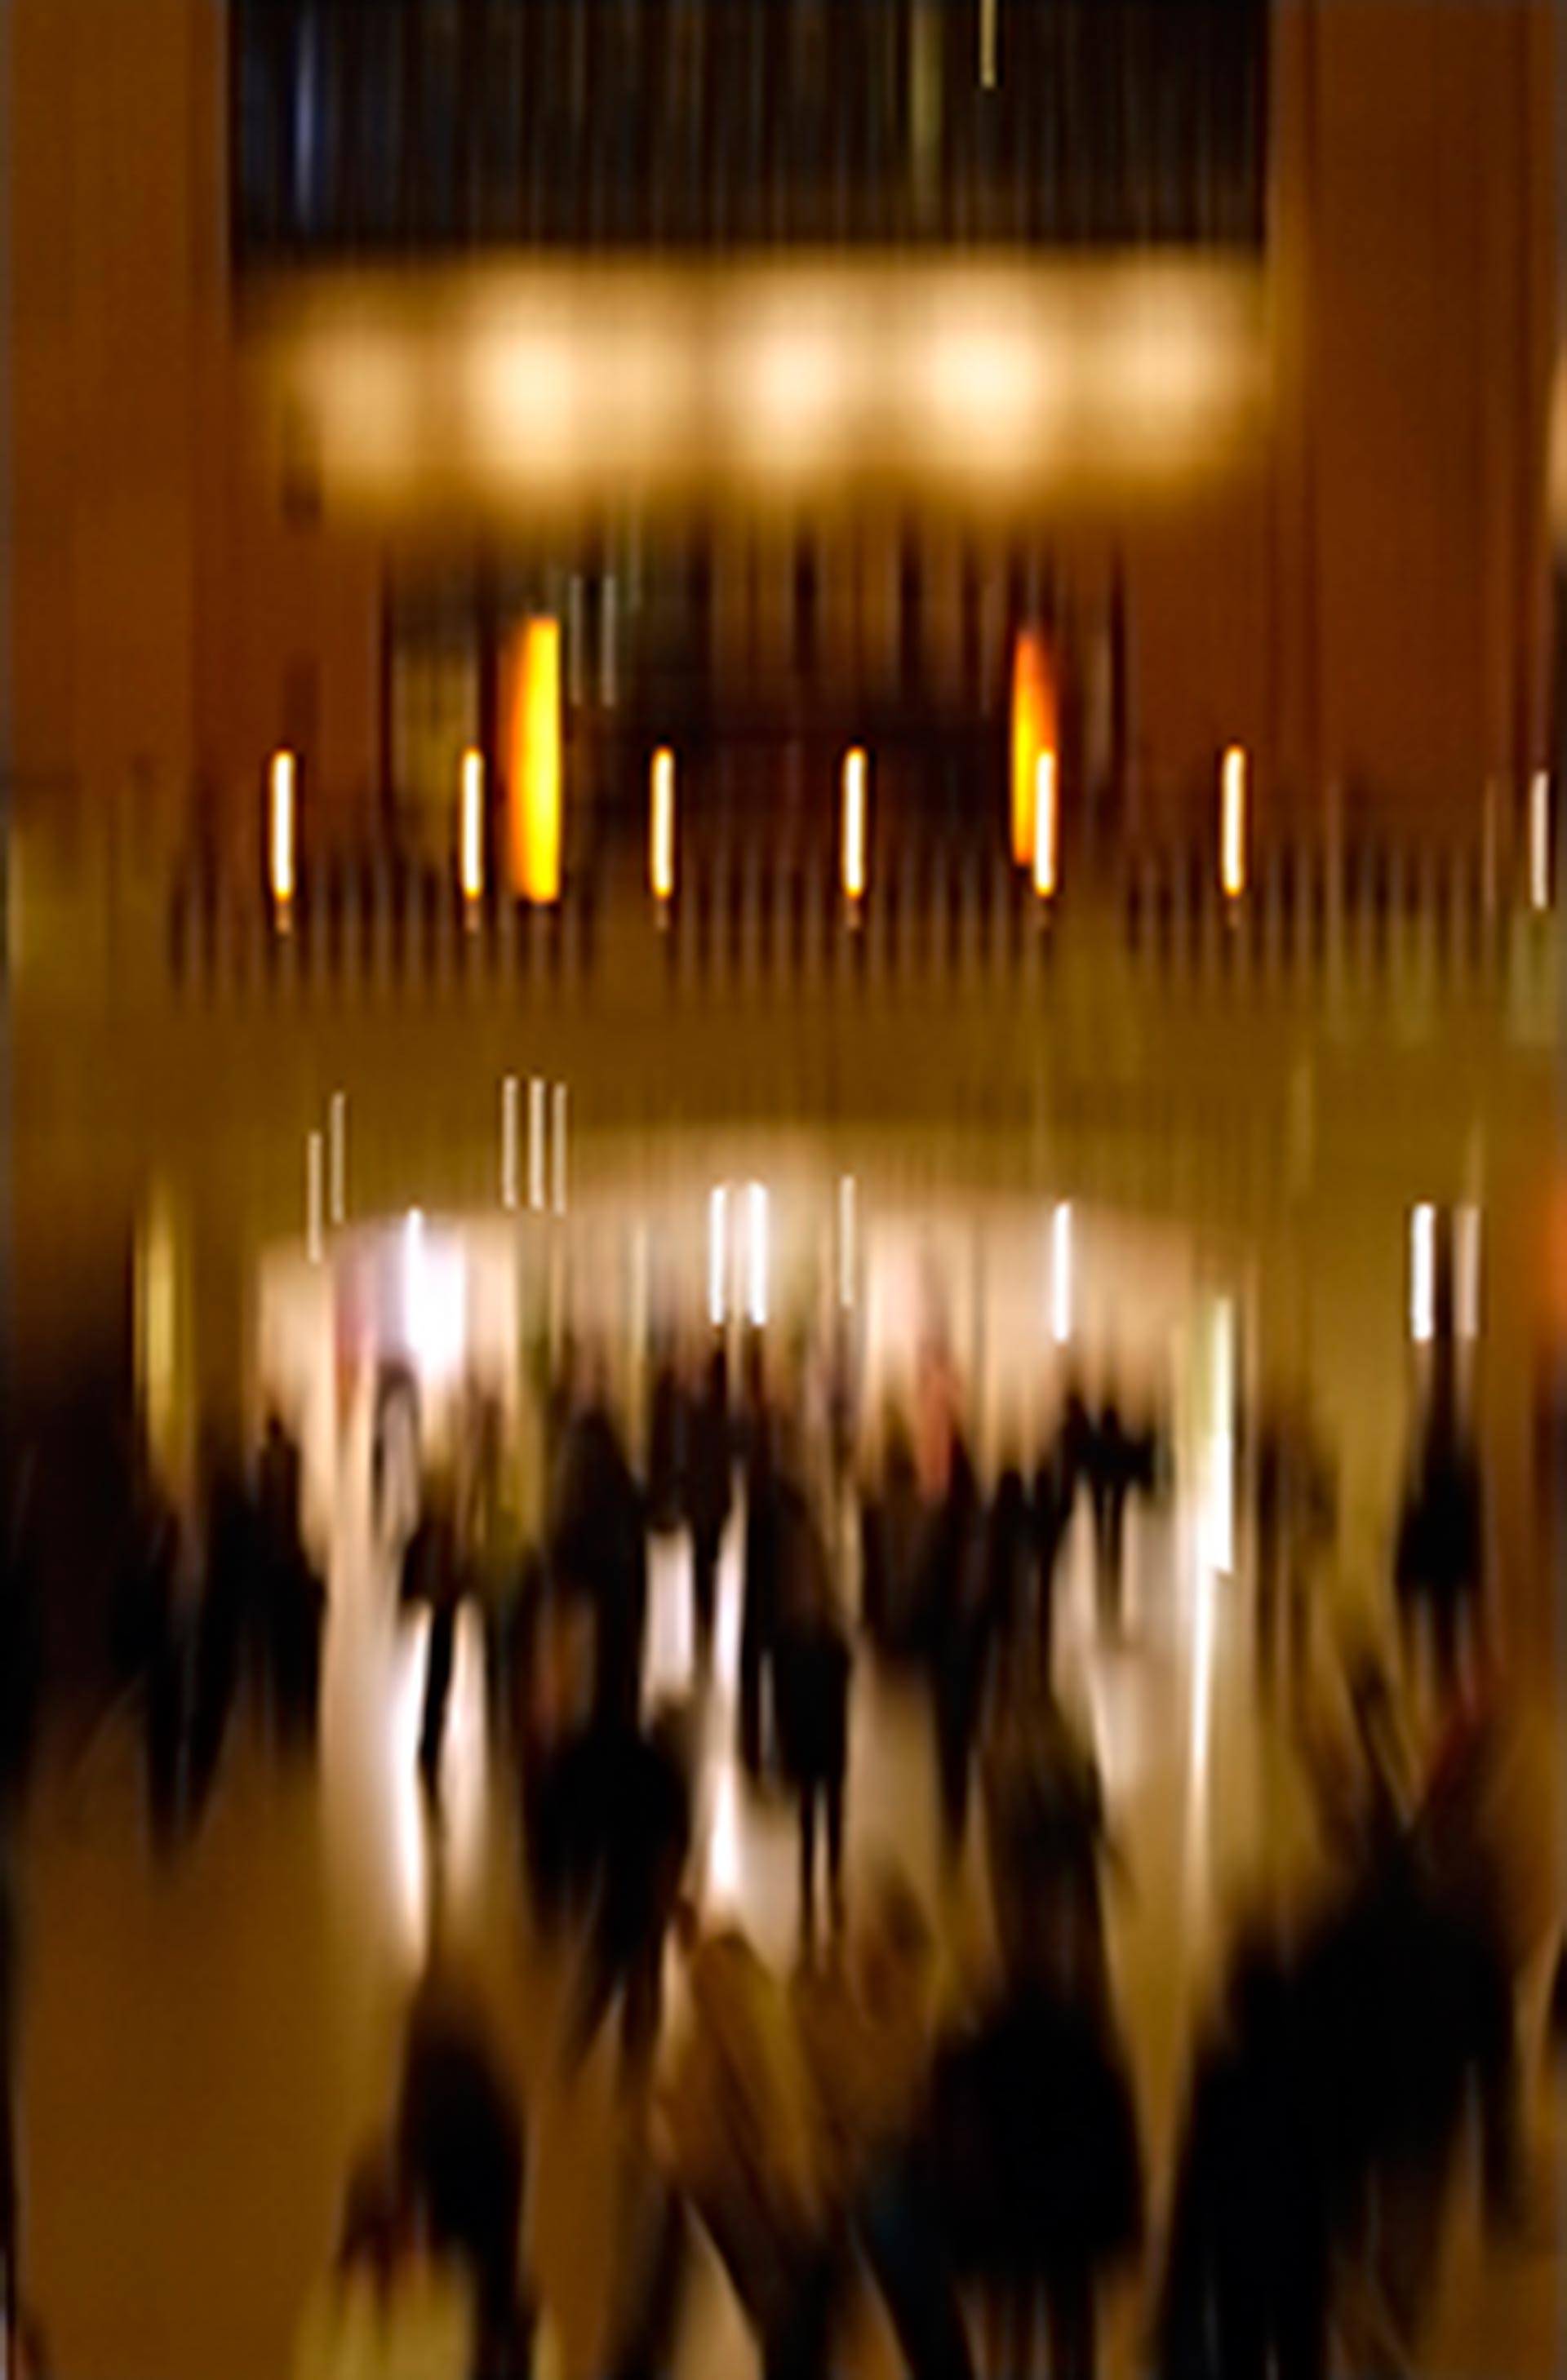 STEFANO ZARDINI New York City Morning crowd at the Grand Central cm. 62 x 92 image, Dibond mount, framed Edition 1/11